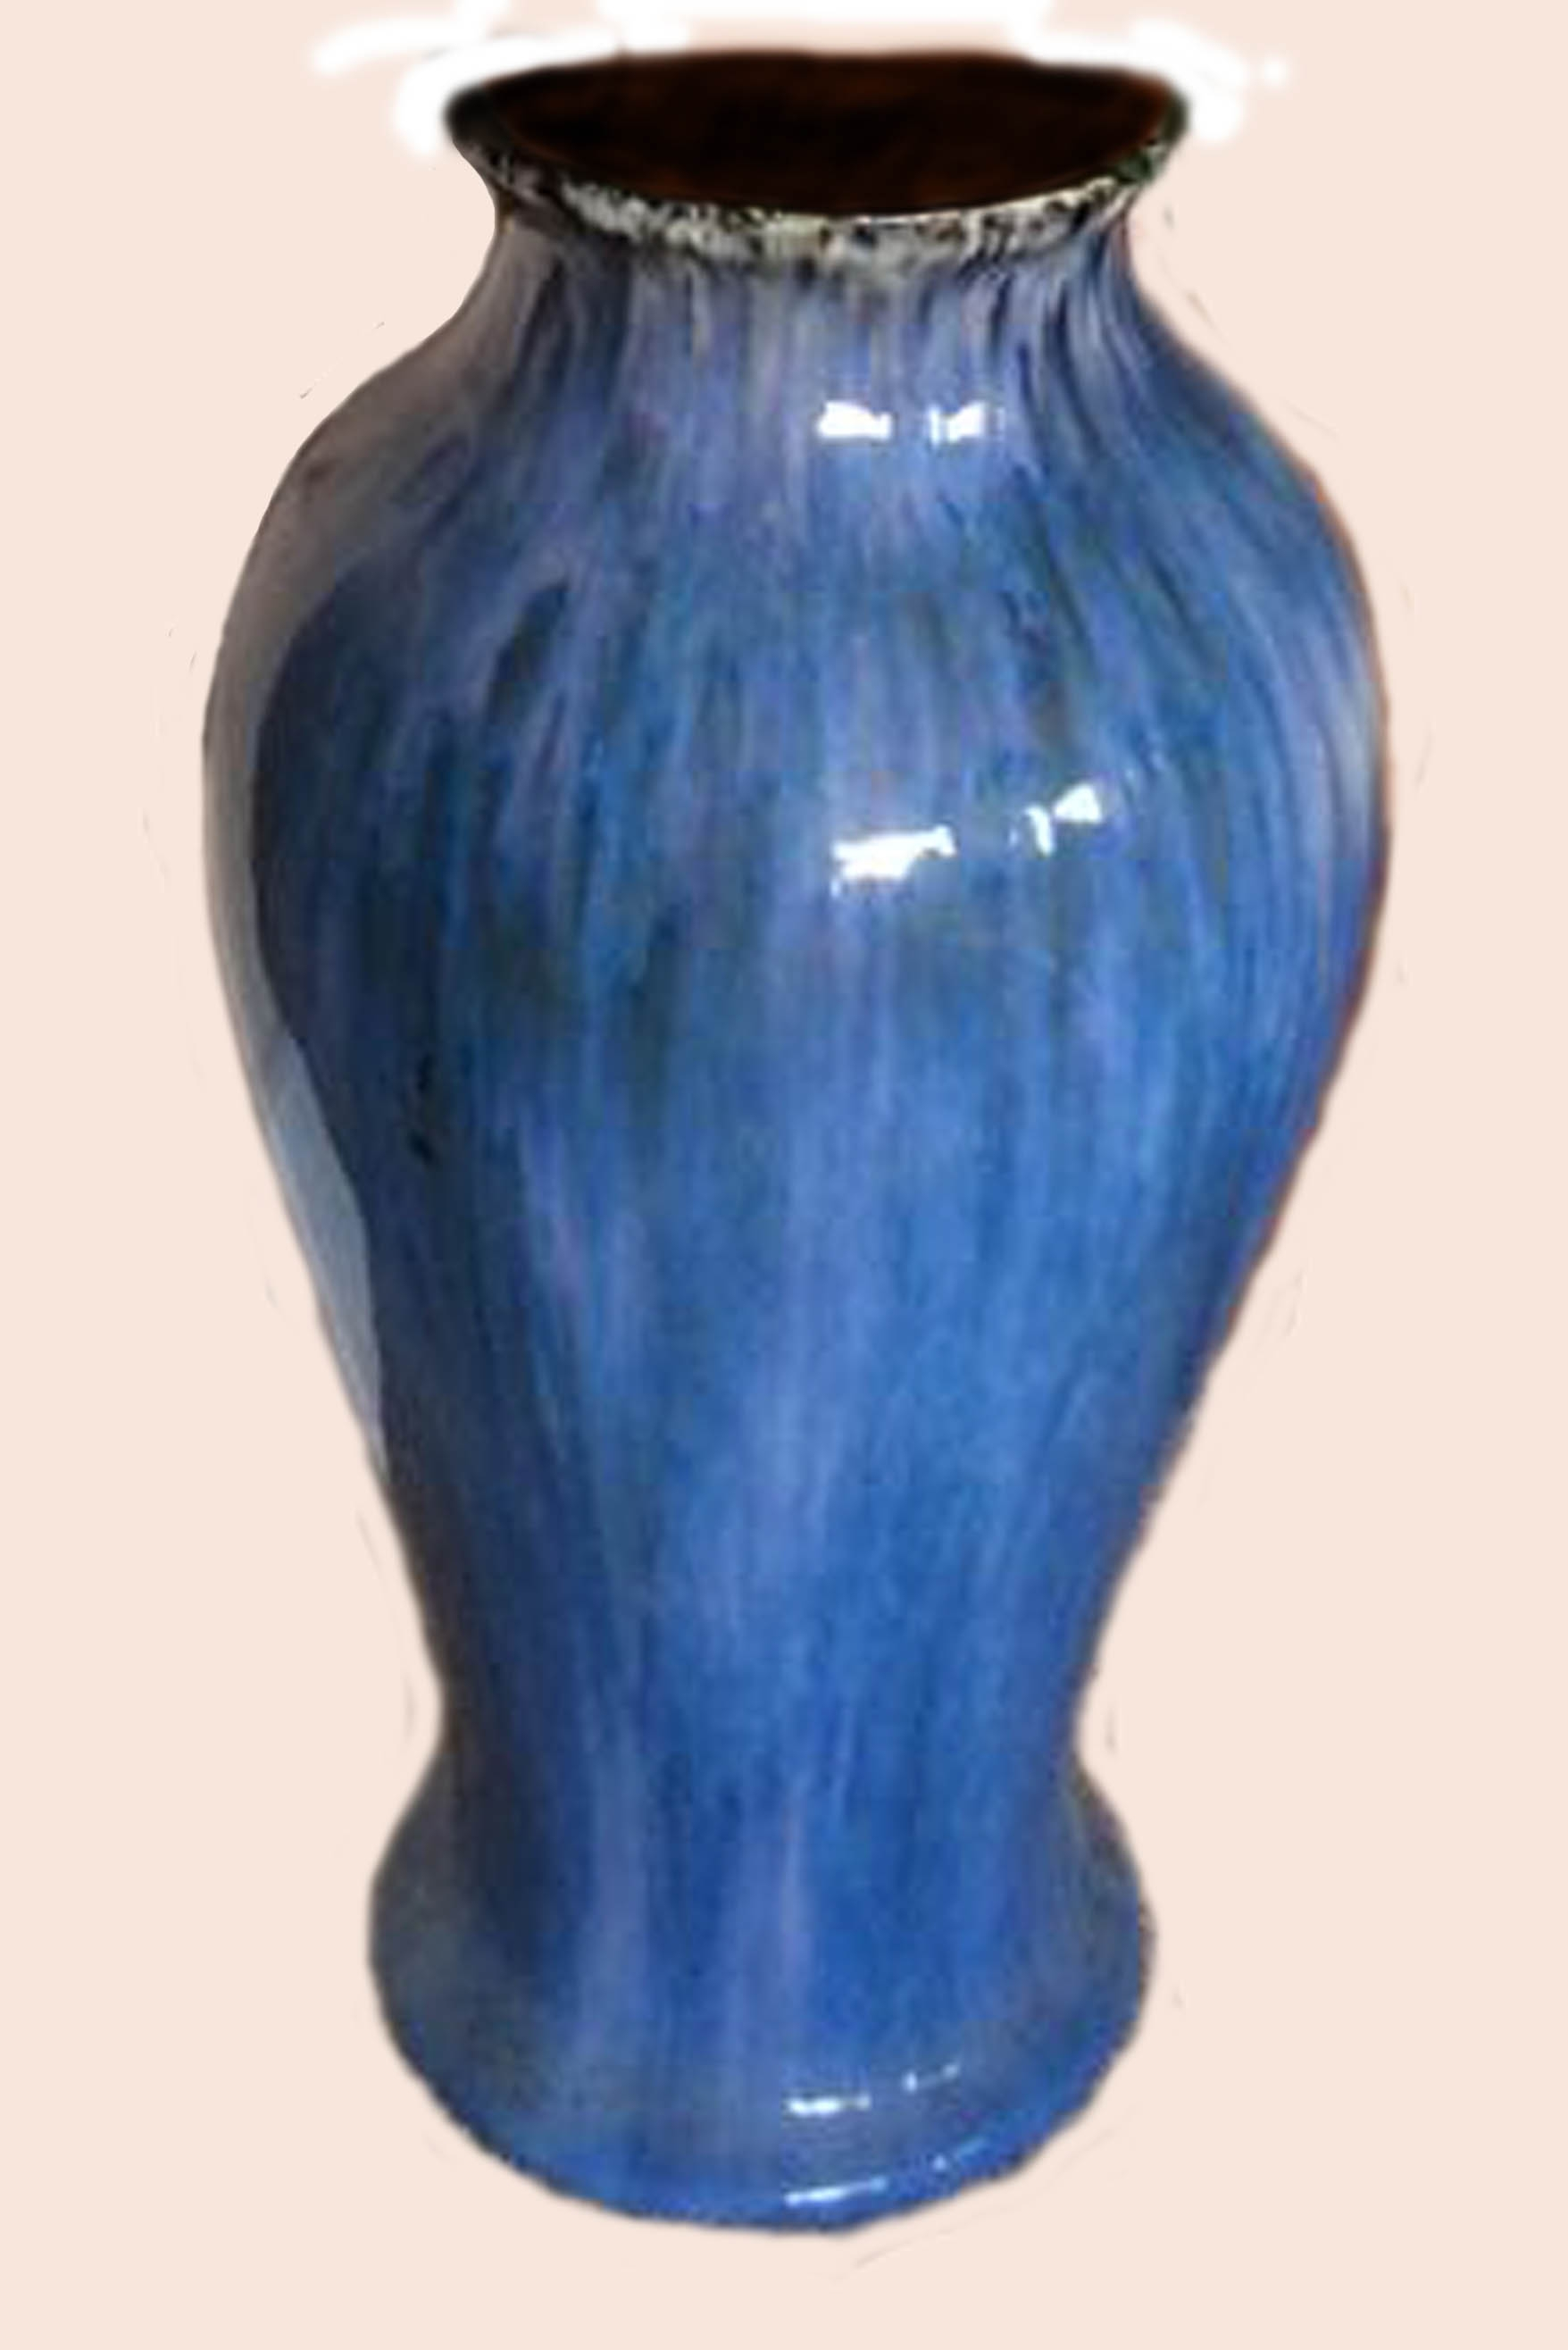 Westcountry & Candy Ware blue vase